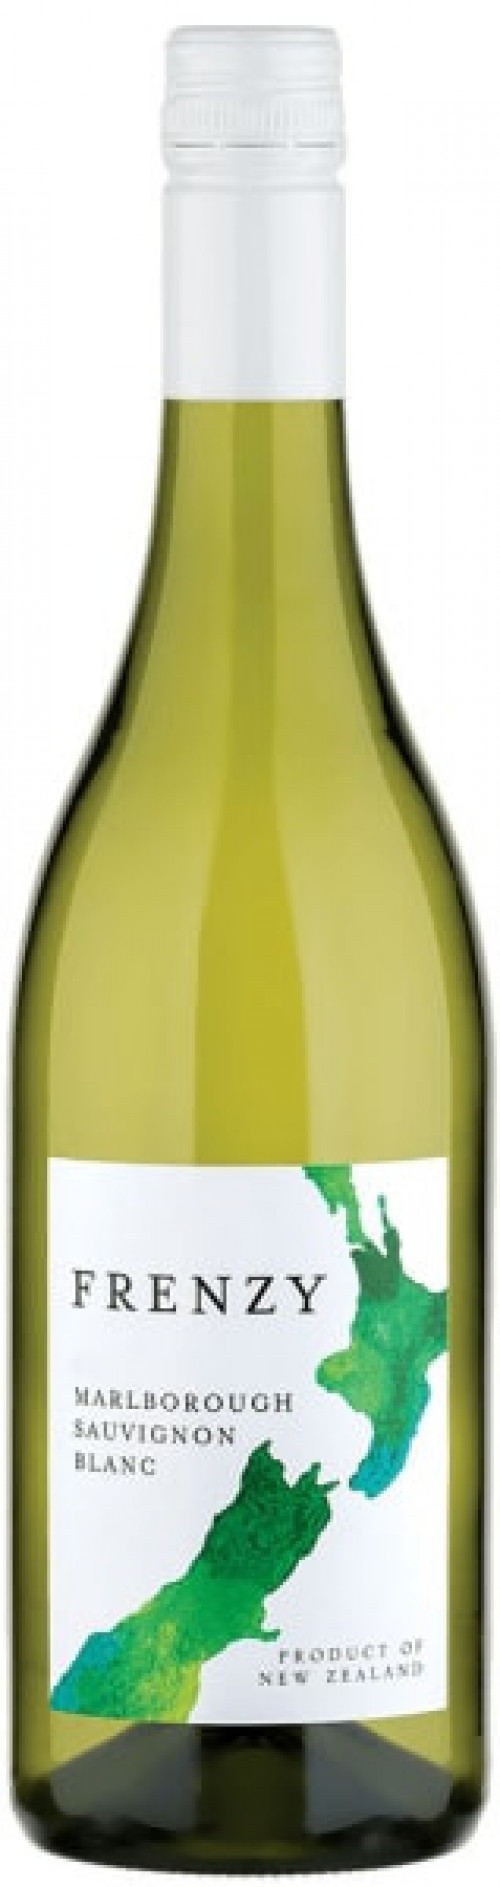 2020 Frenzy Sauvignon Blanc 750ml